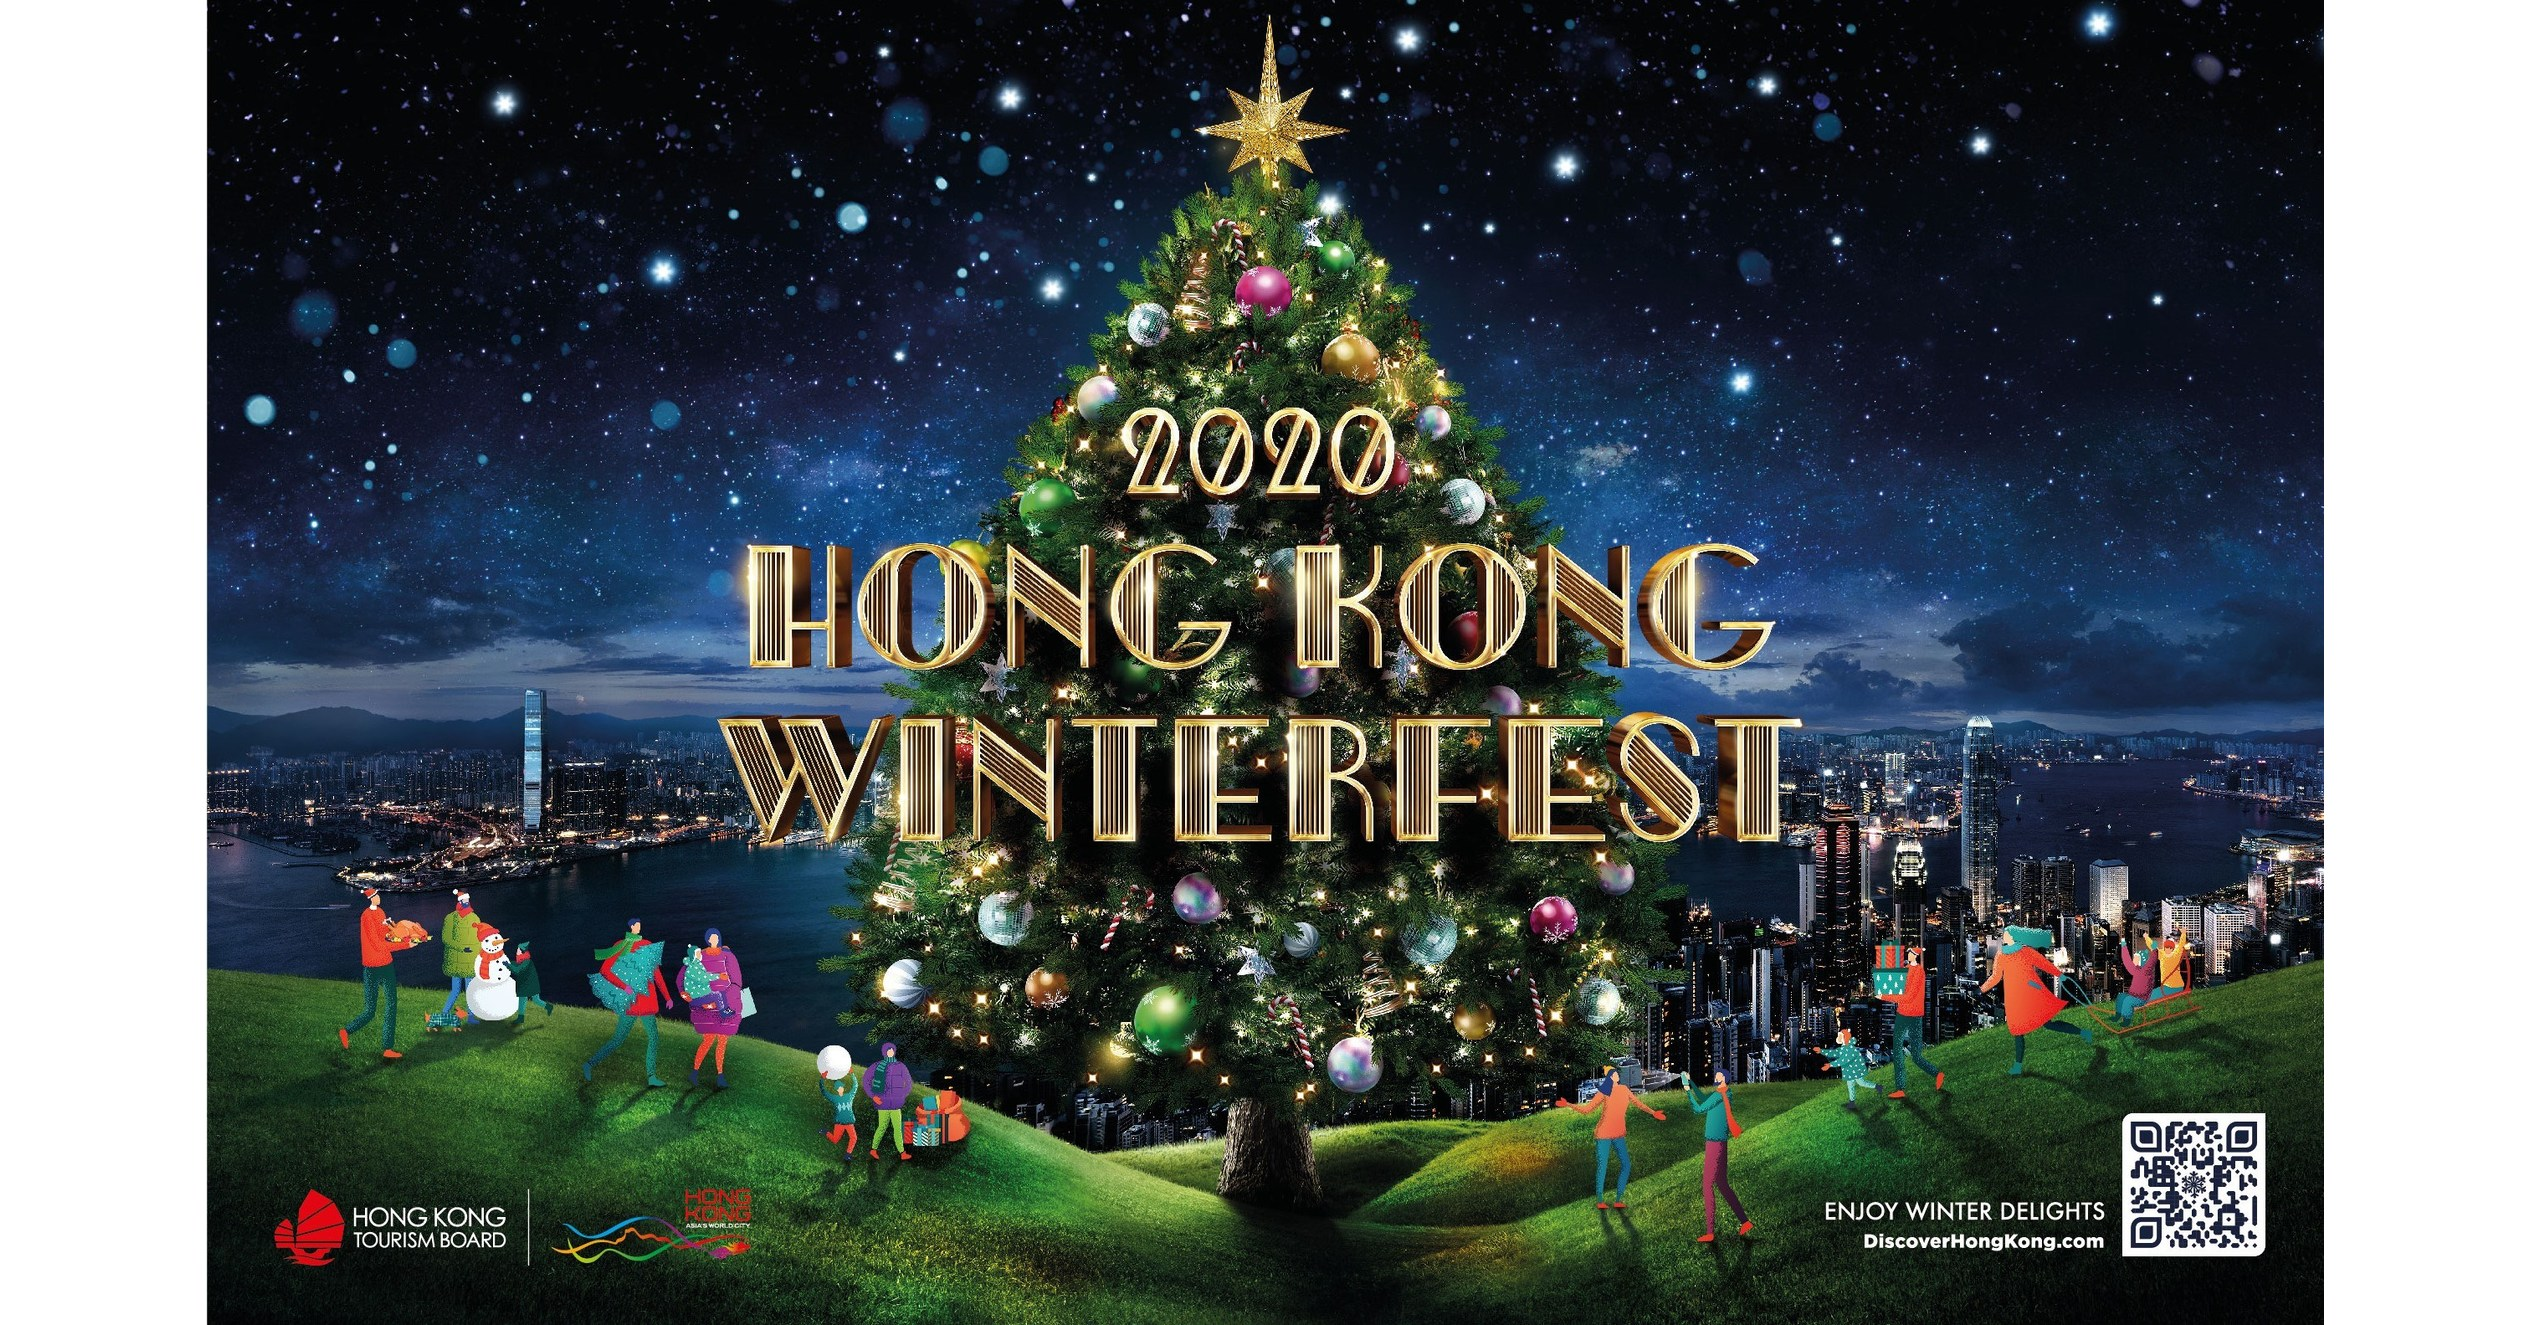 Hong Kong Turns to Technology to Dazzle this Christmas